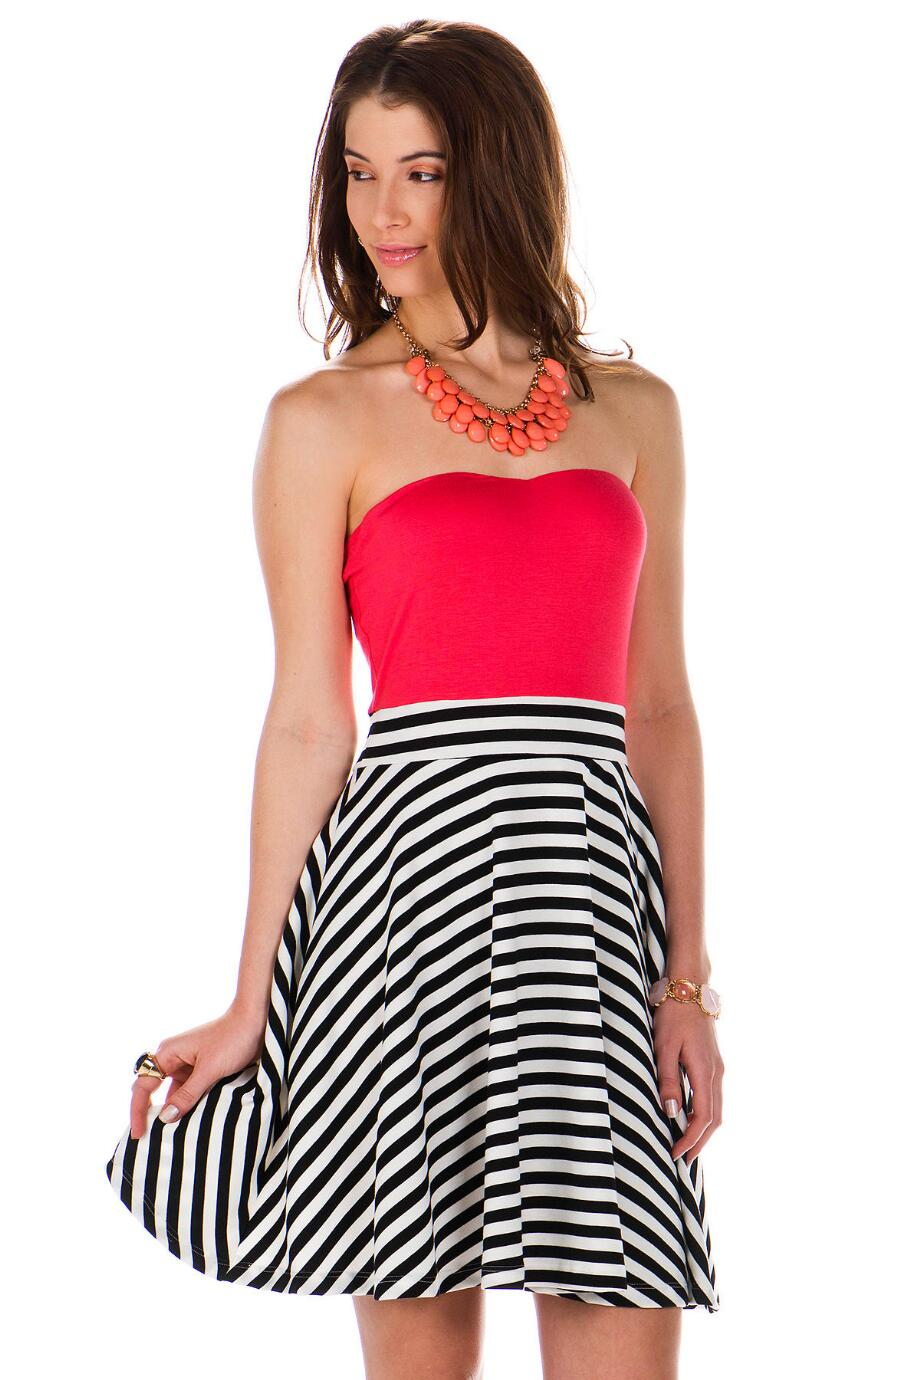 Alton Road Strapless Dress